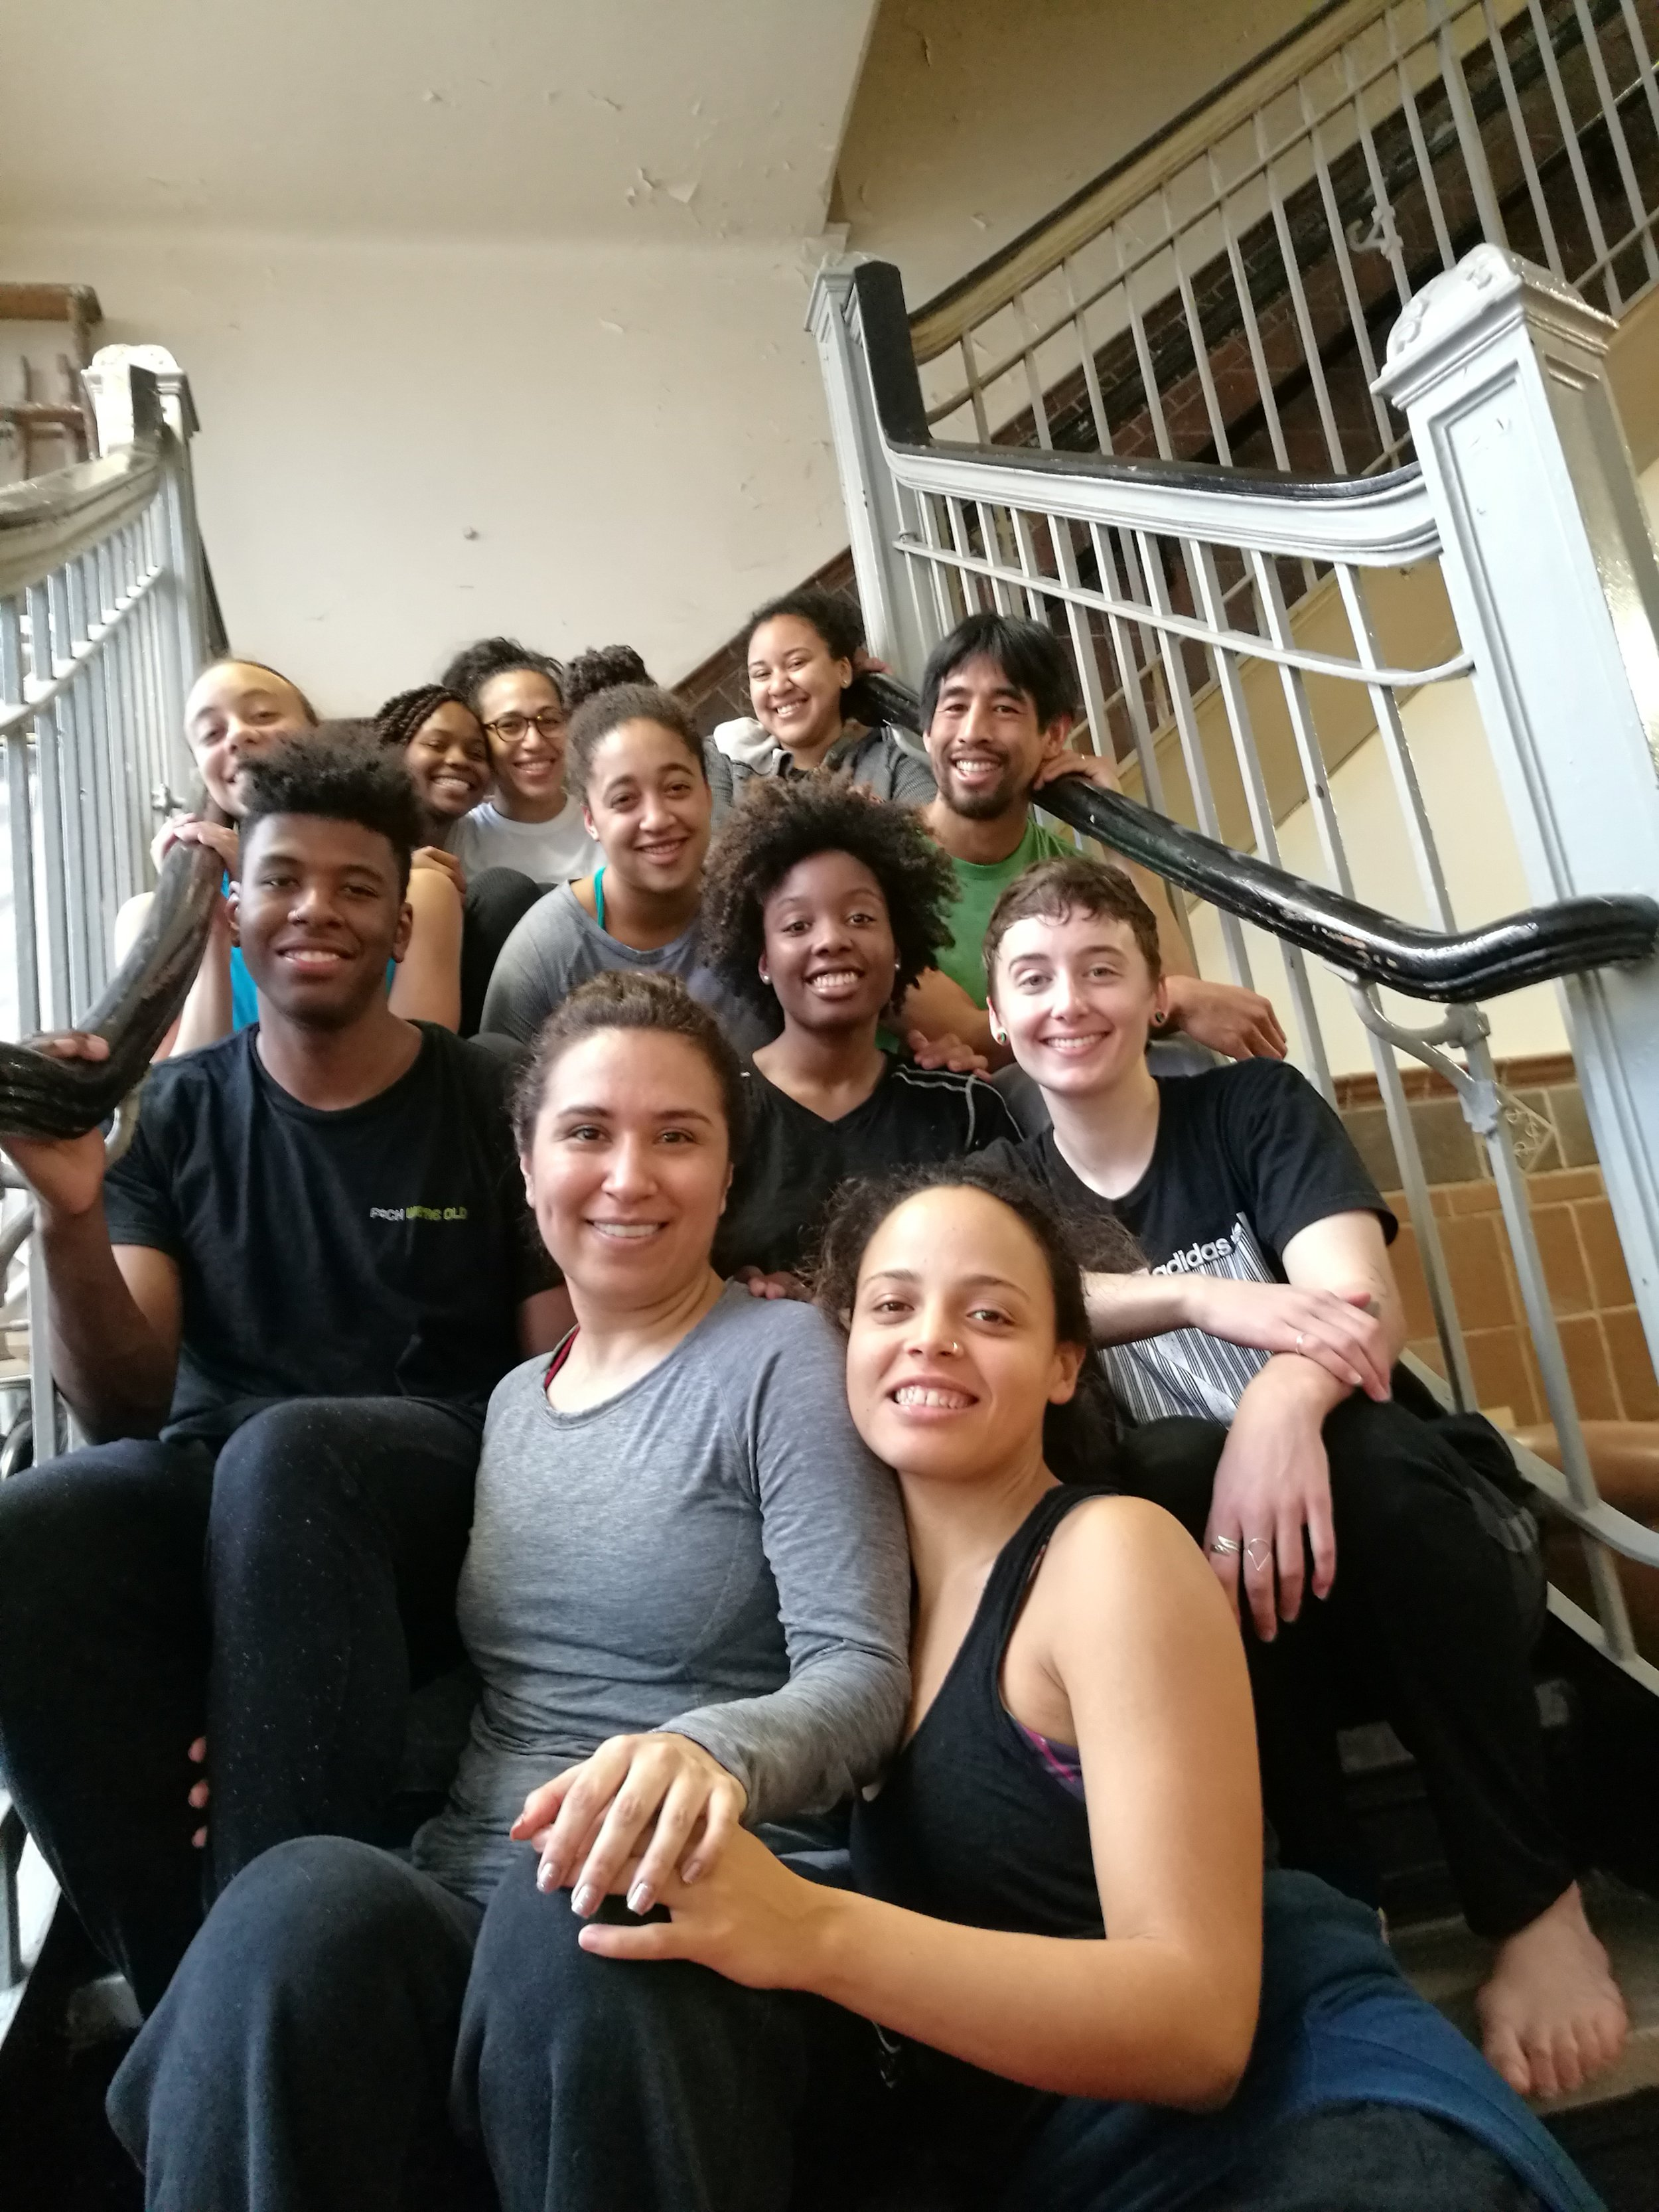 Movement of the People Dance Company (choreographer Joya Powell)